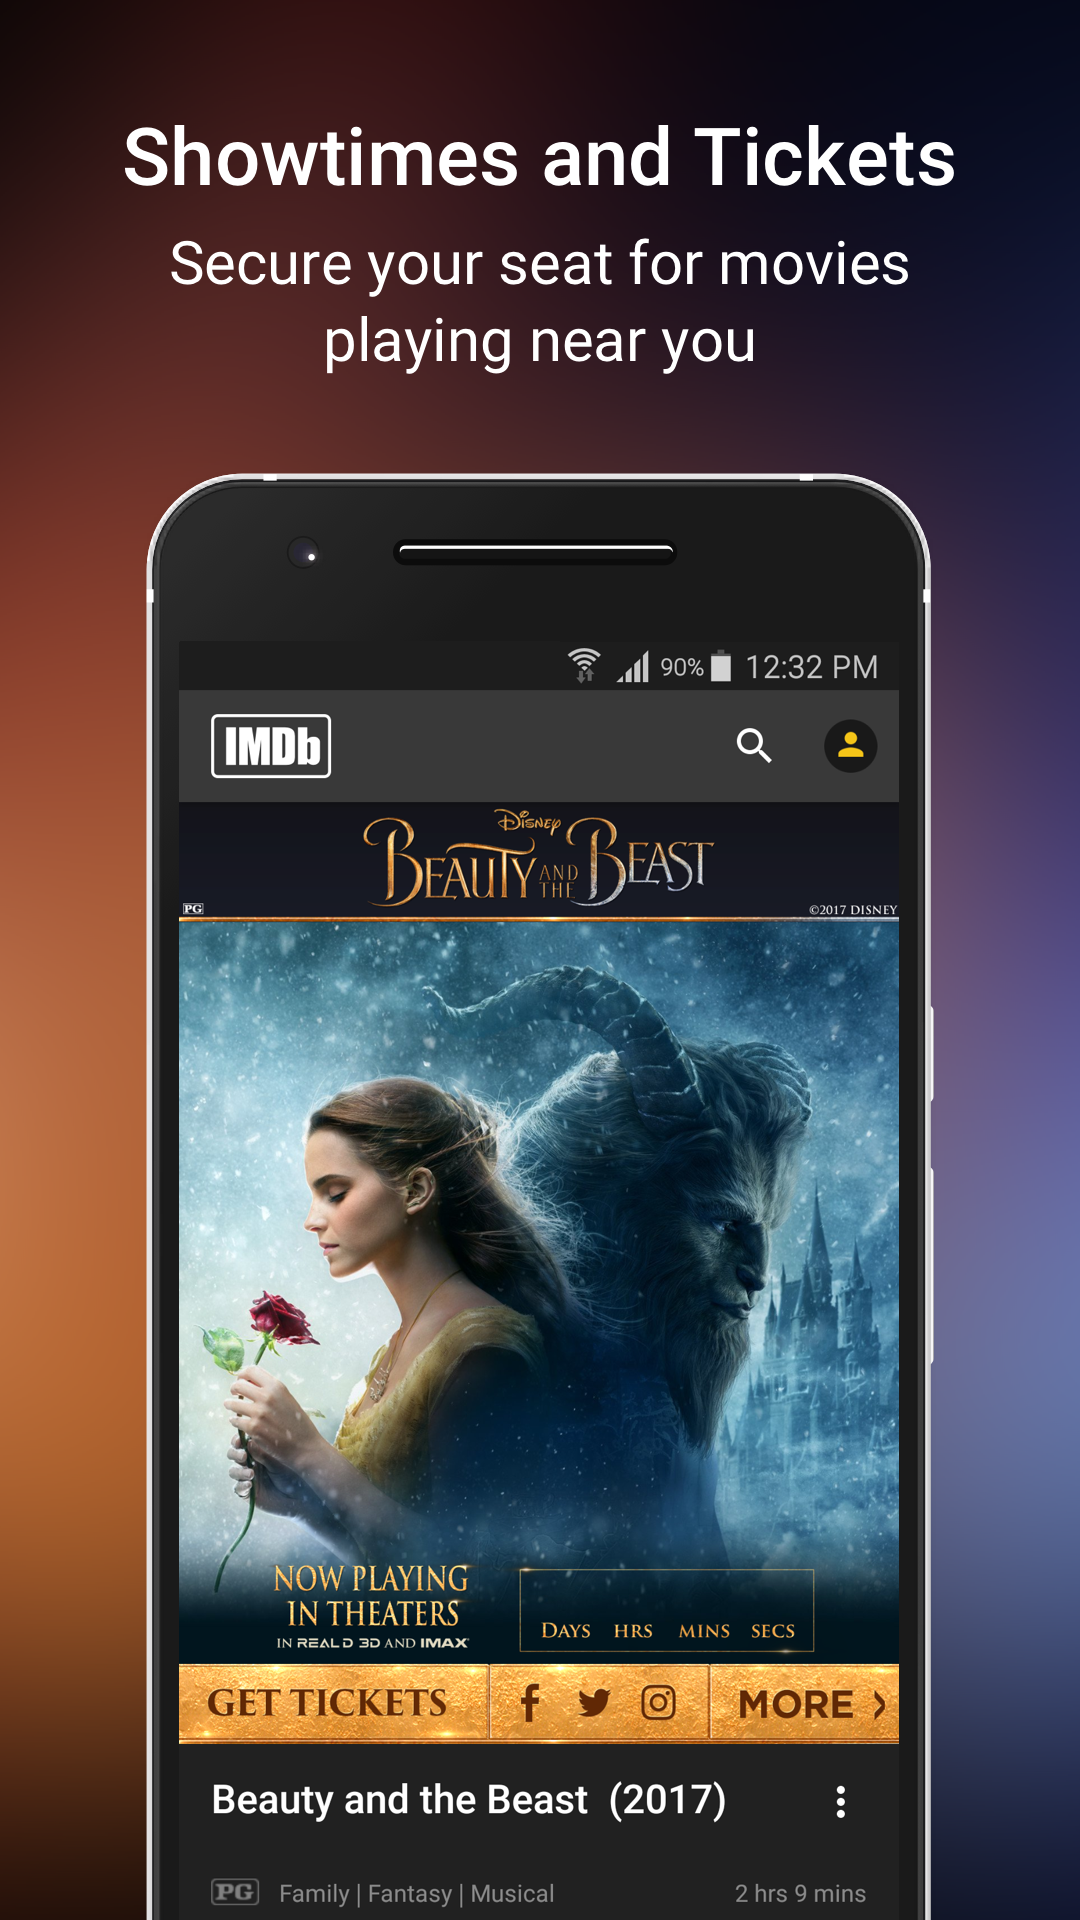 Amazon.com: IMDb Movies & TV: Appstore for Android